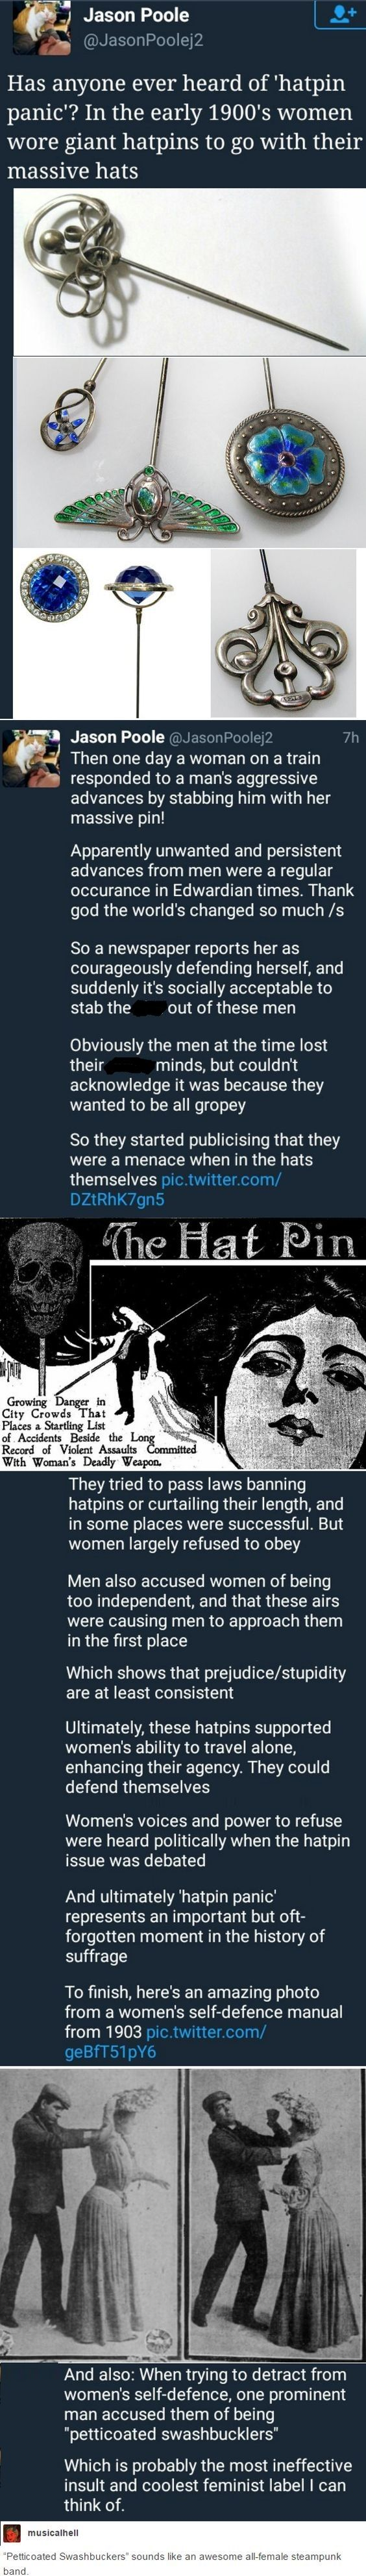 The hat pin panic